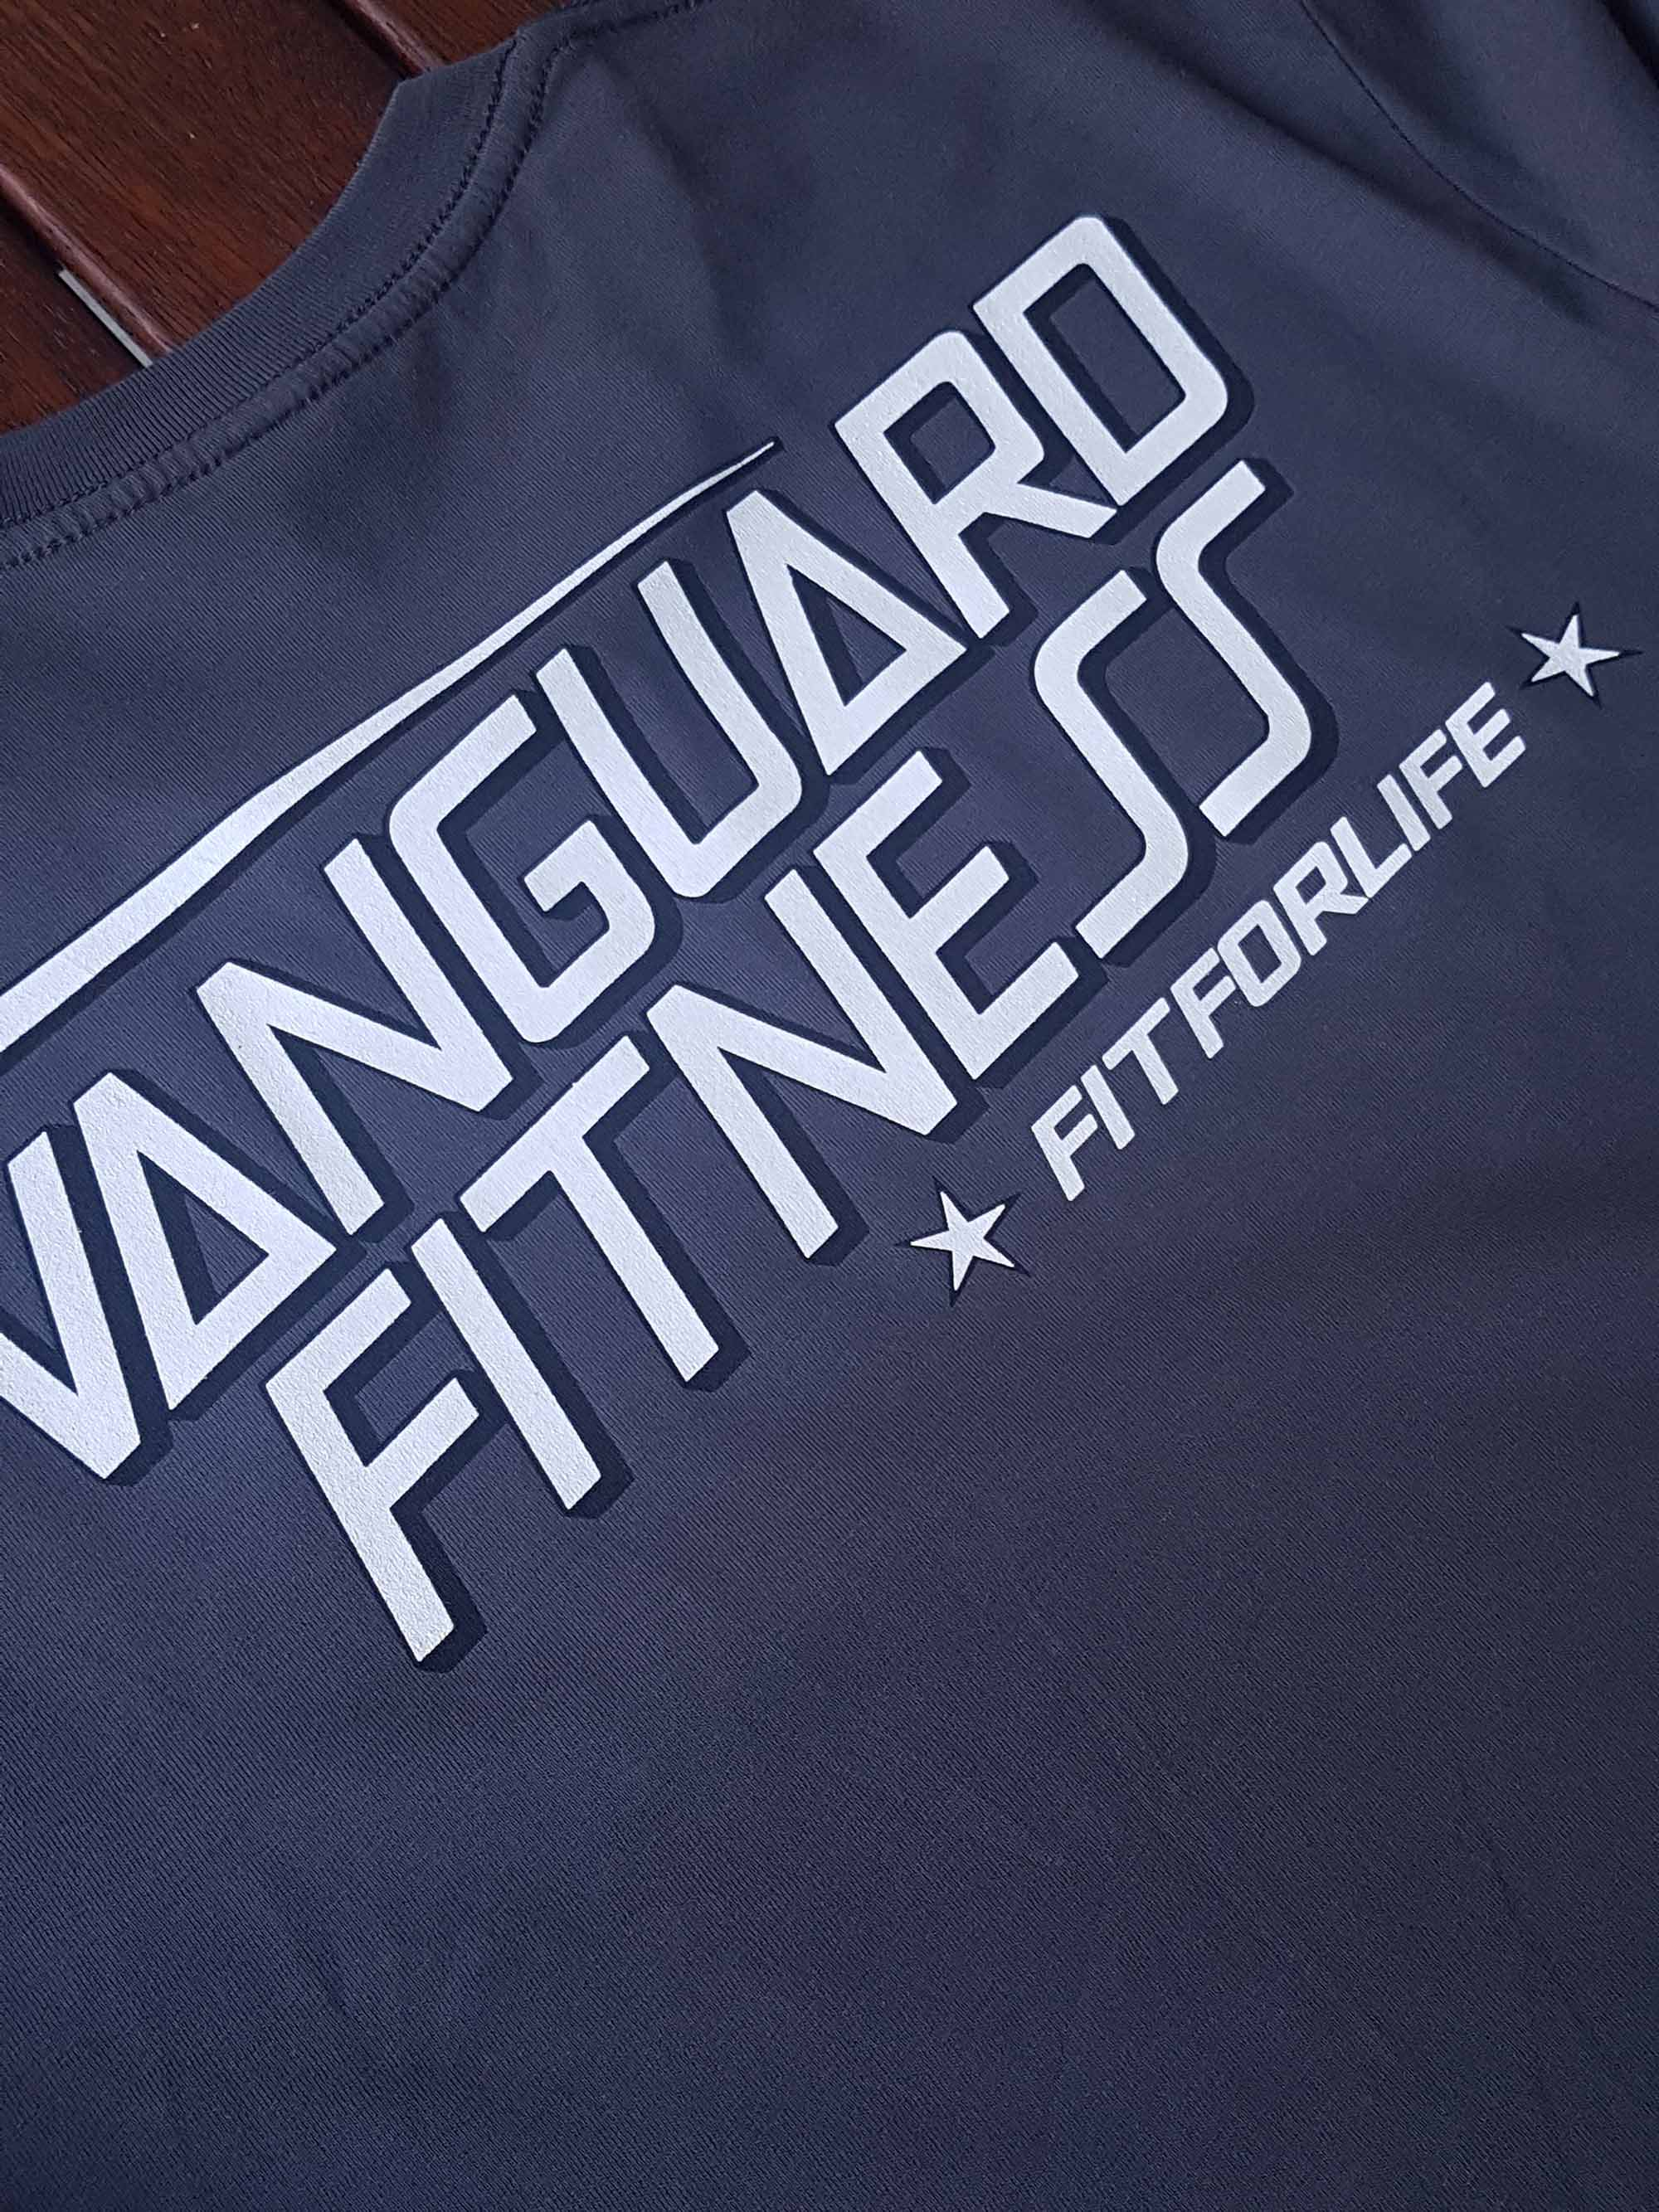 Vanguard-fitness-back-print